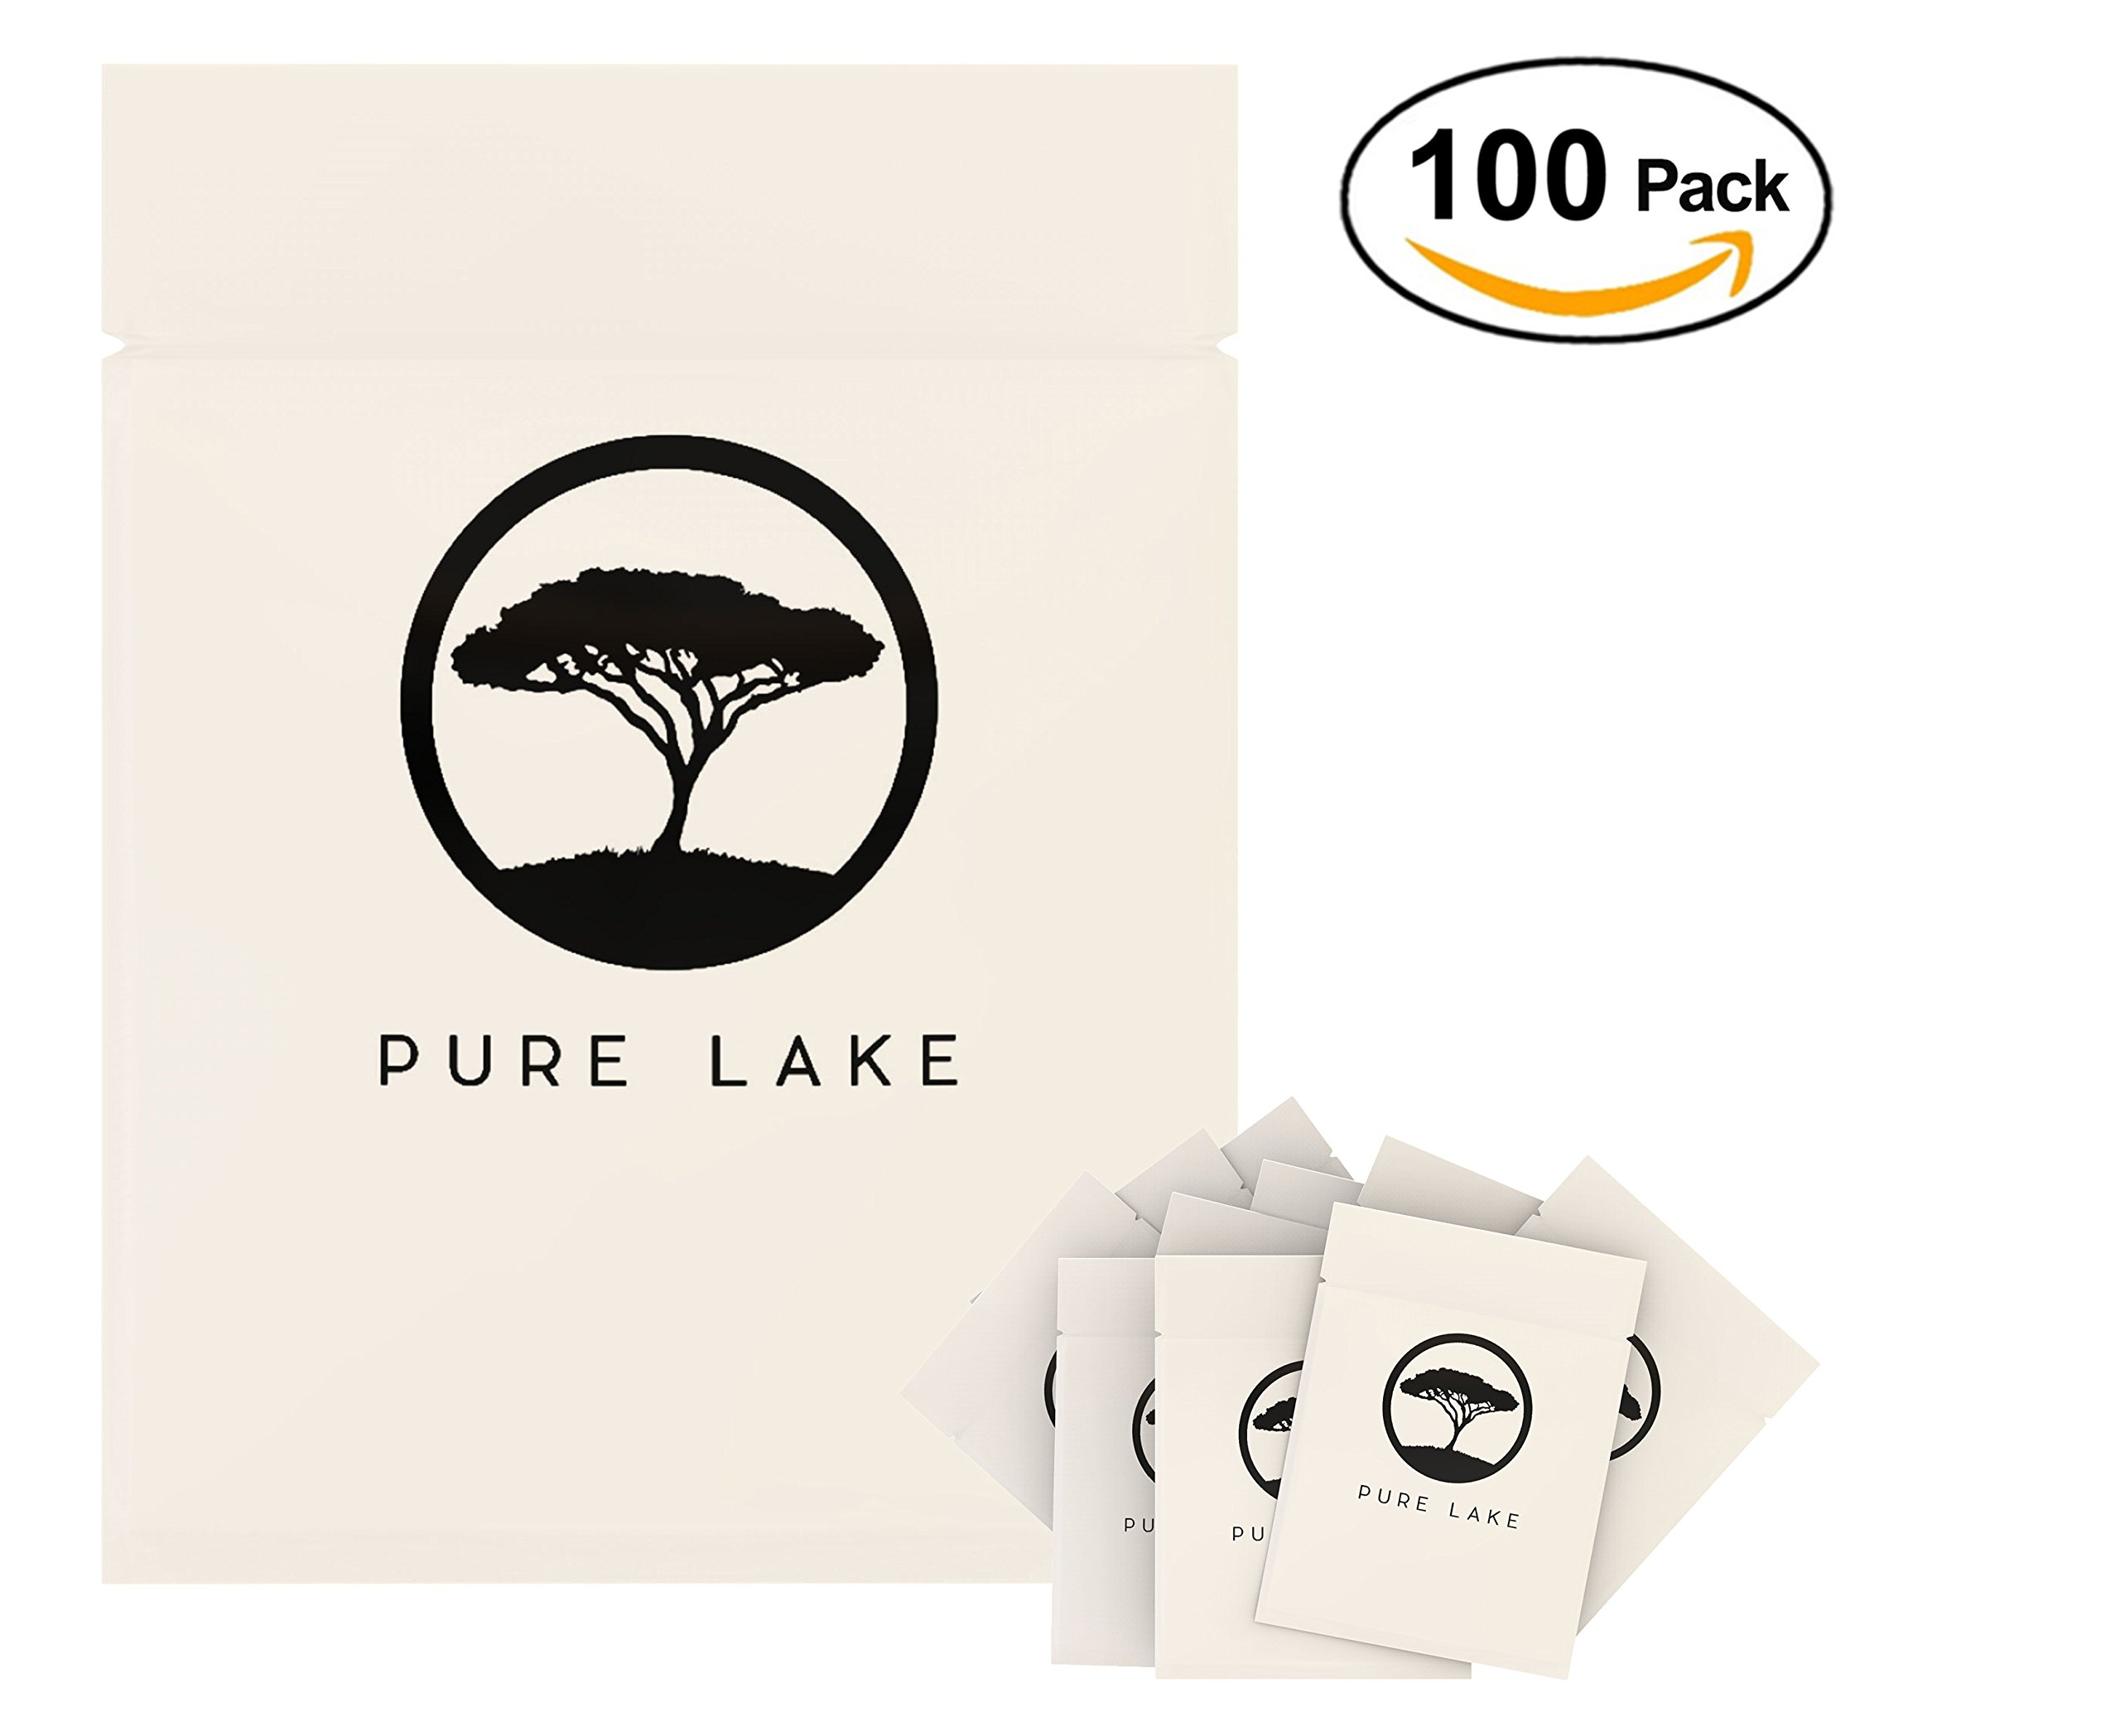 Pure Lake Eyelash Extension Under Eye Gel Pads- 100 Pairs Set - Lint Free Under Eye Patches with soothing Aloe Vera and nourishing Vitamin C - Professional Quality